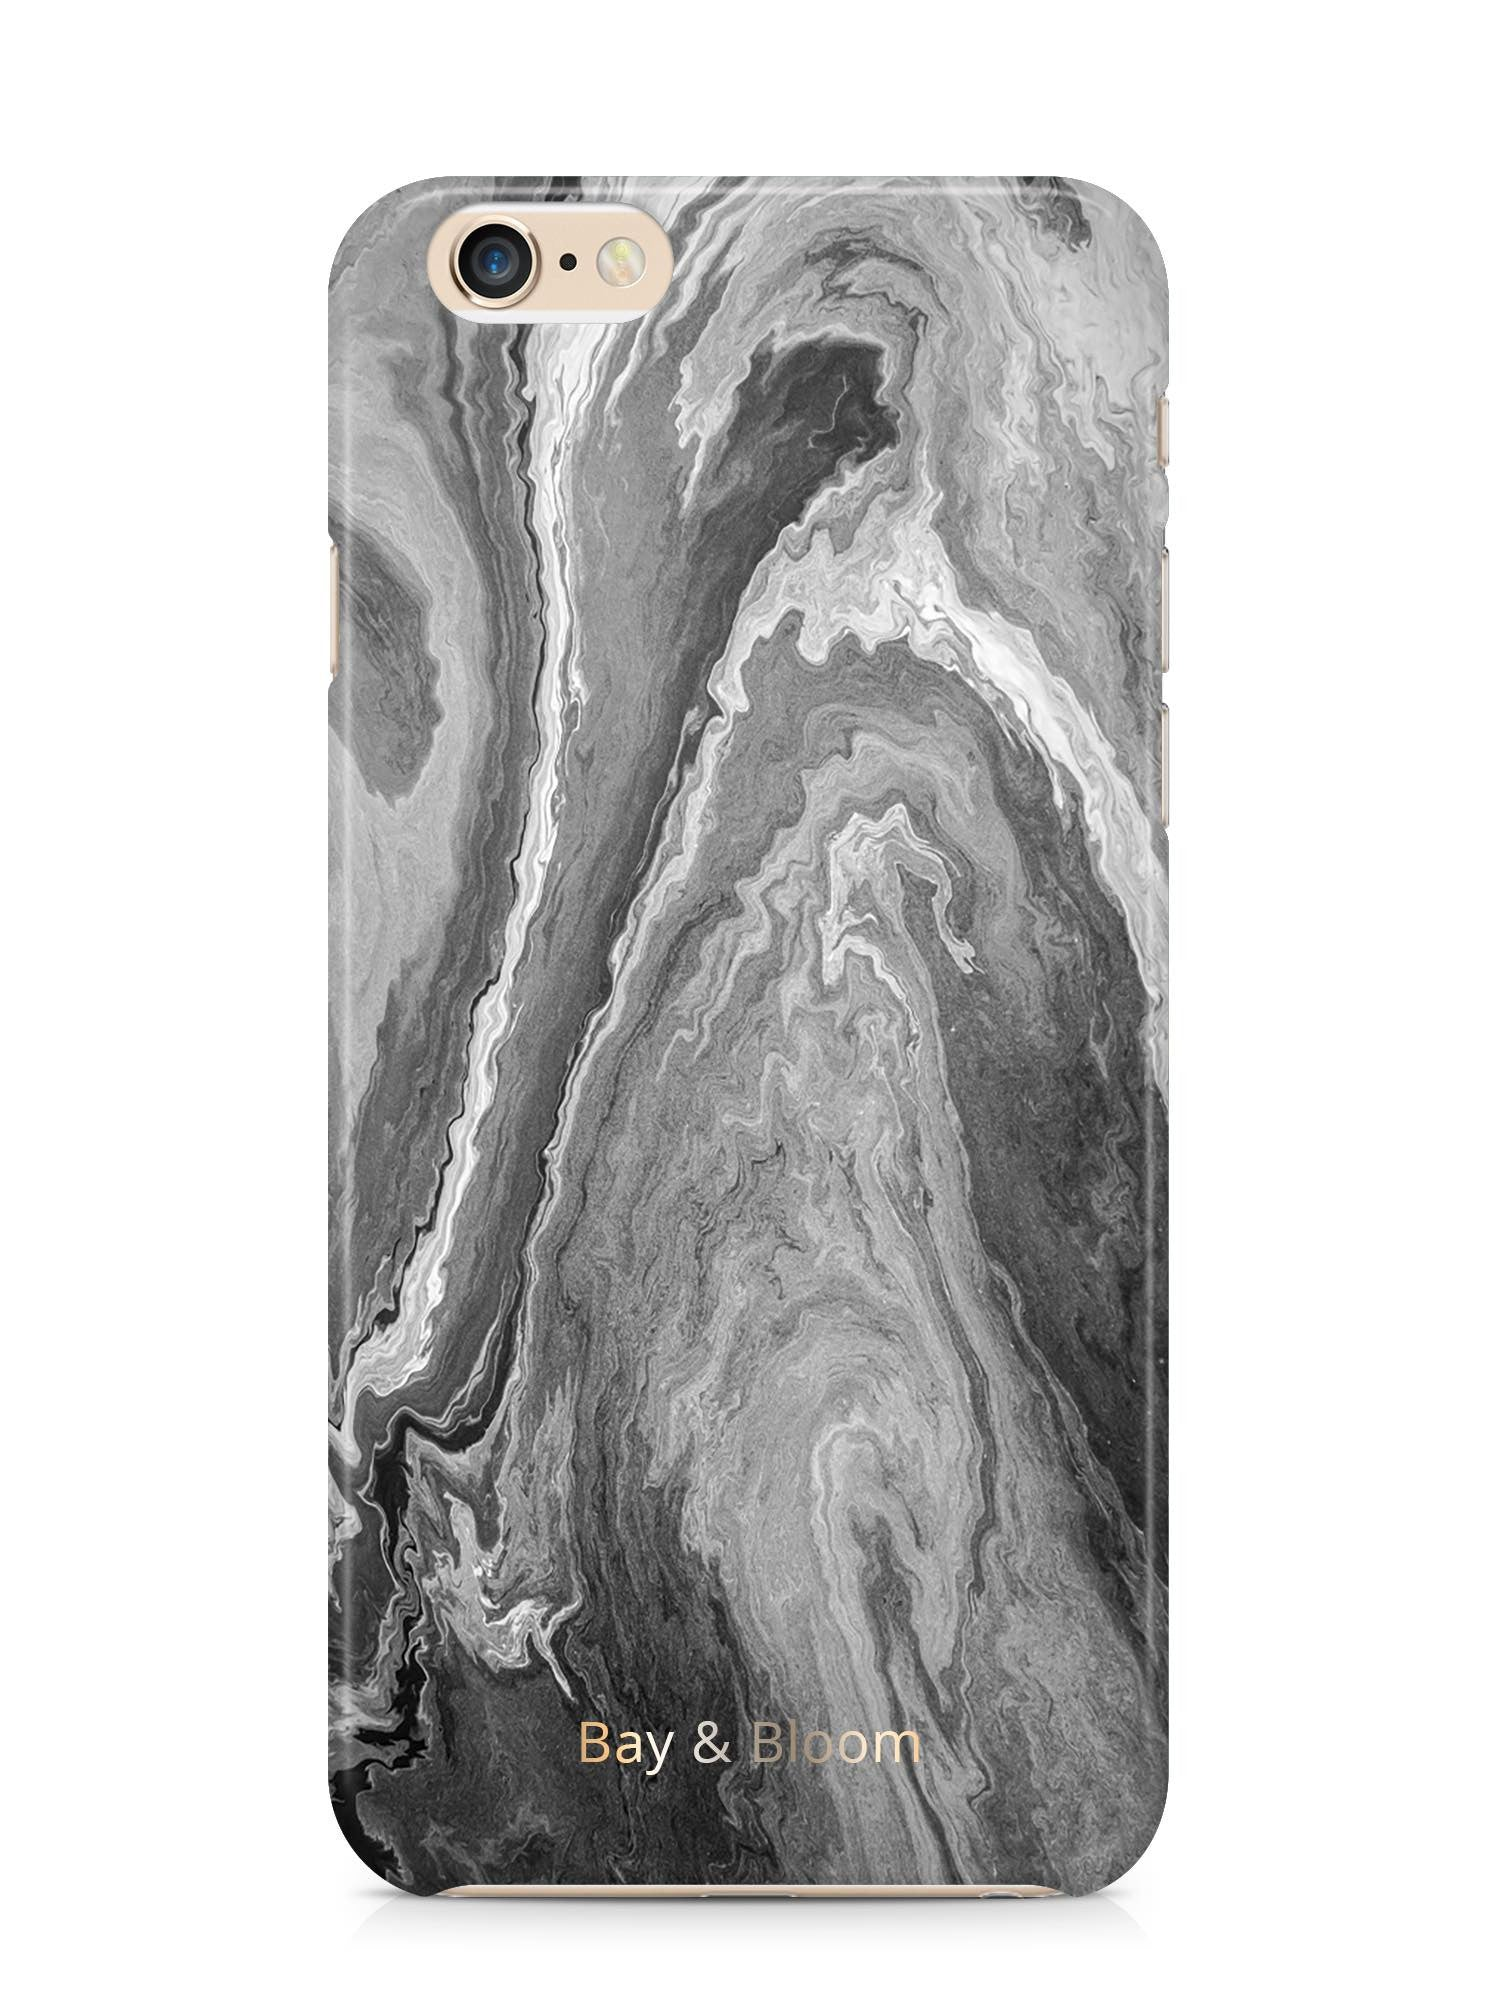 Bay & Bloom iPhone cover - Grey Stone (iPhone 5 & 6) - Luxedy